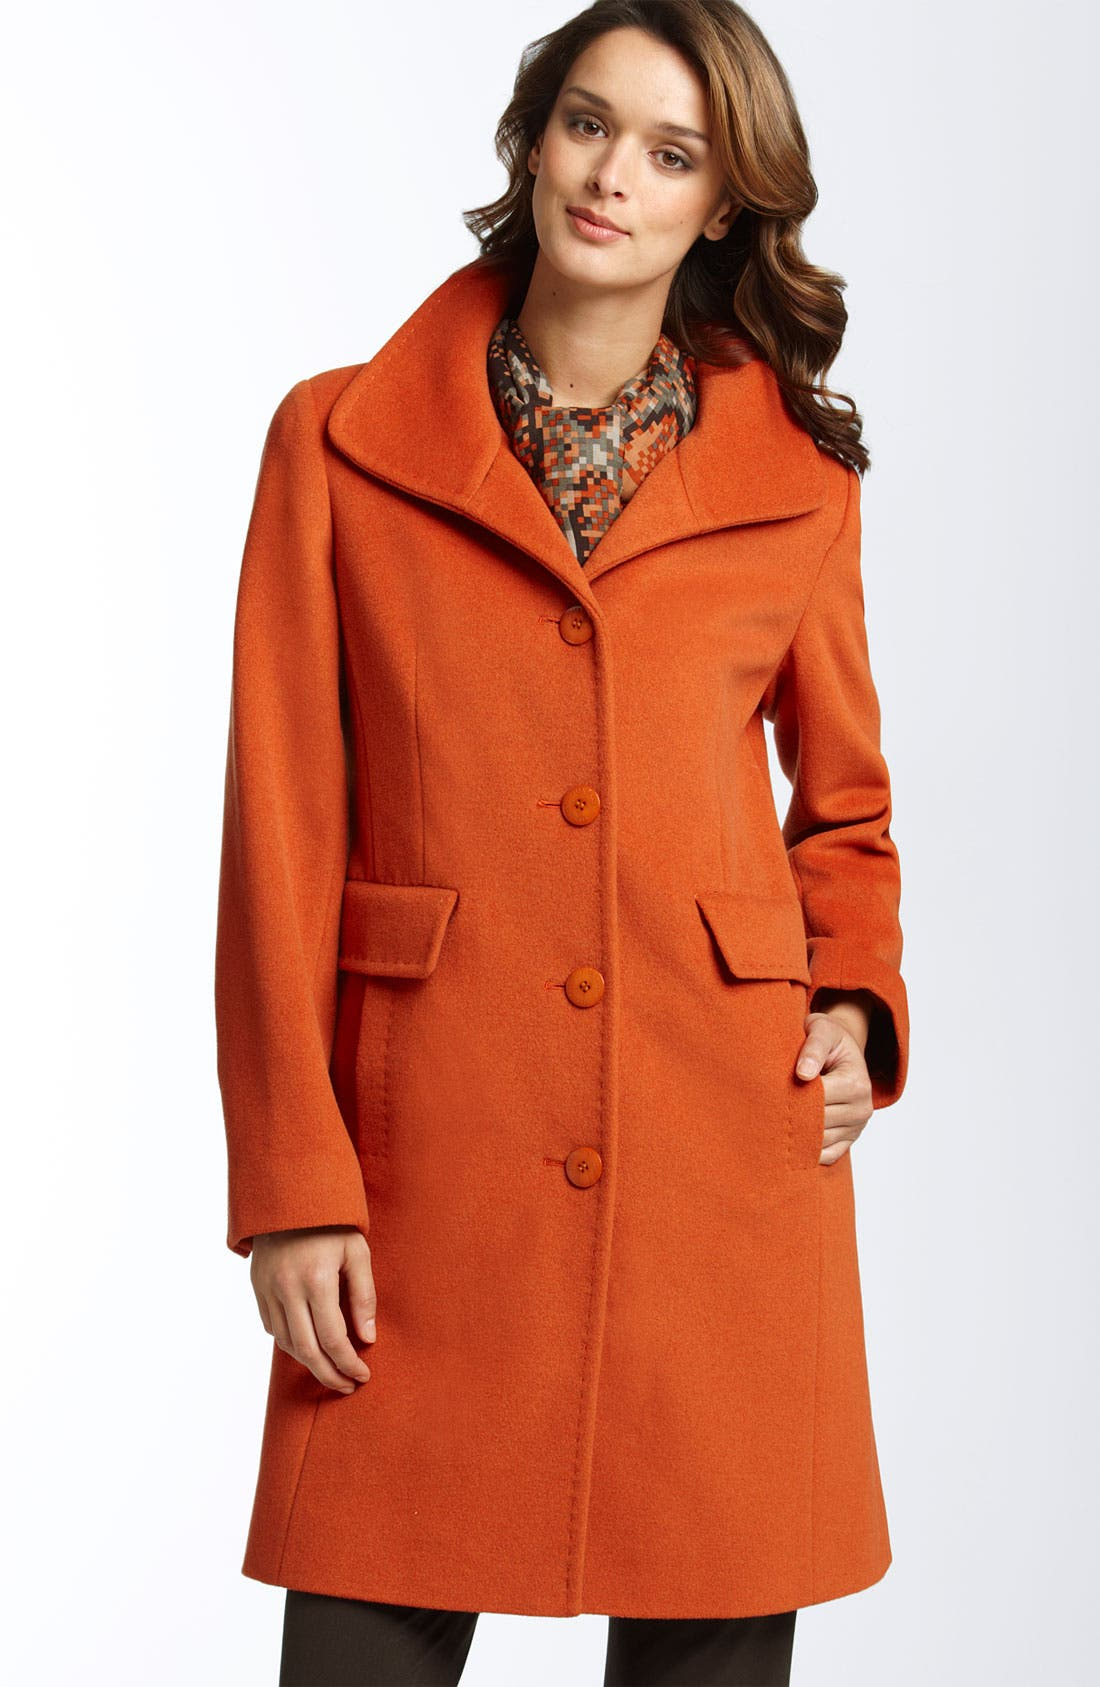 Alternate Image 1 Selected - Ellen Tracy Convertible Collar Coat